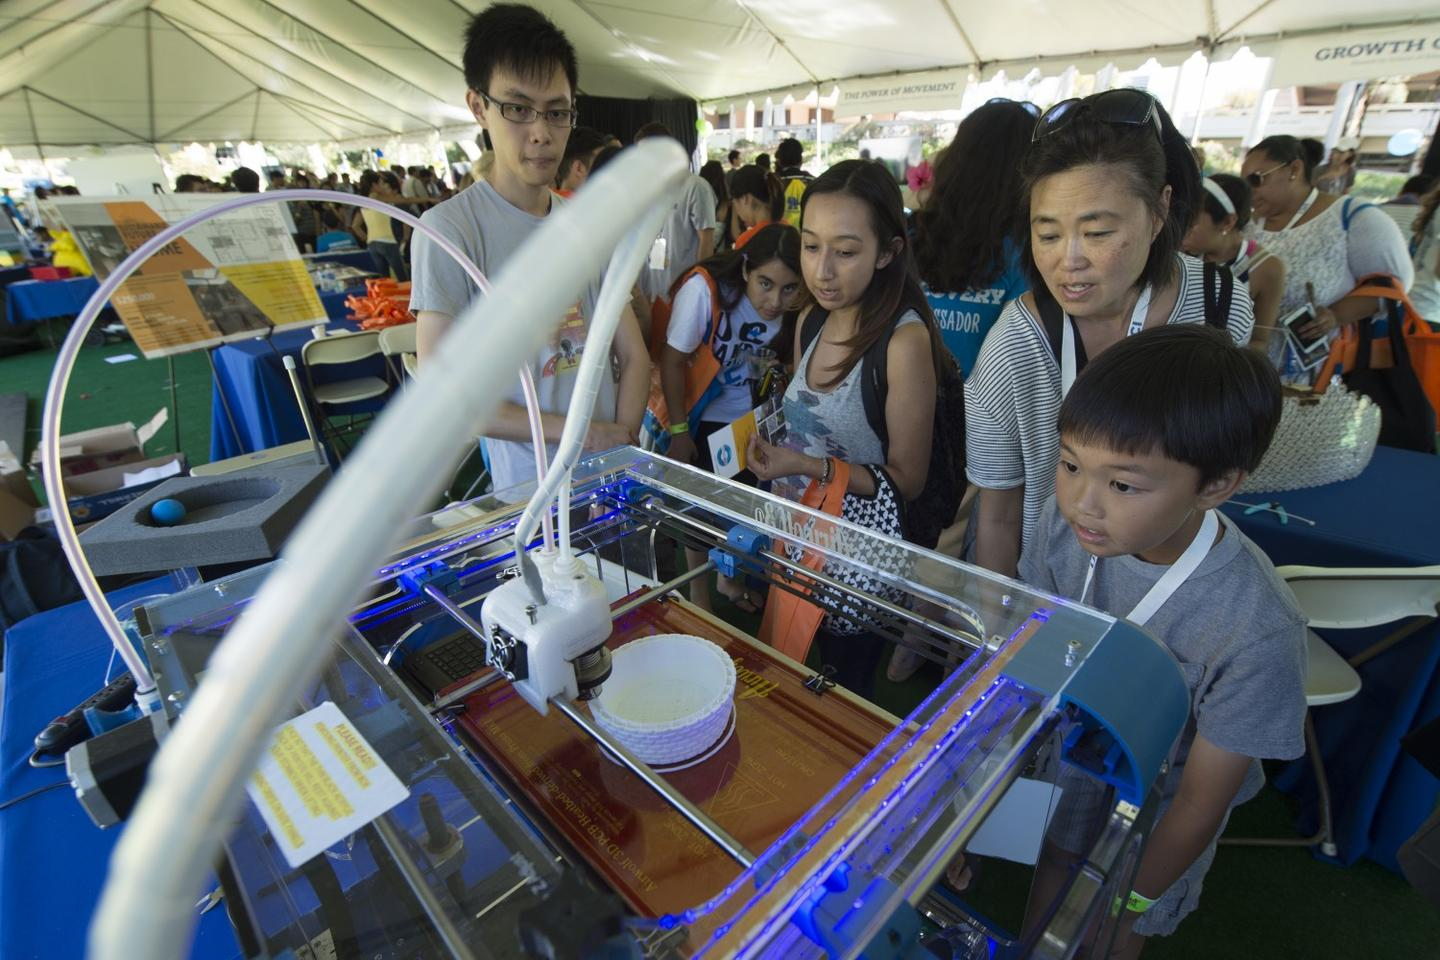 The sounds of a 3D printer may present opportunities for intellectual property theft